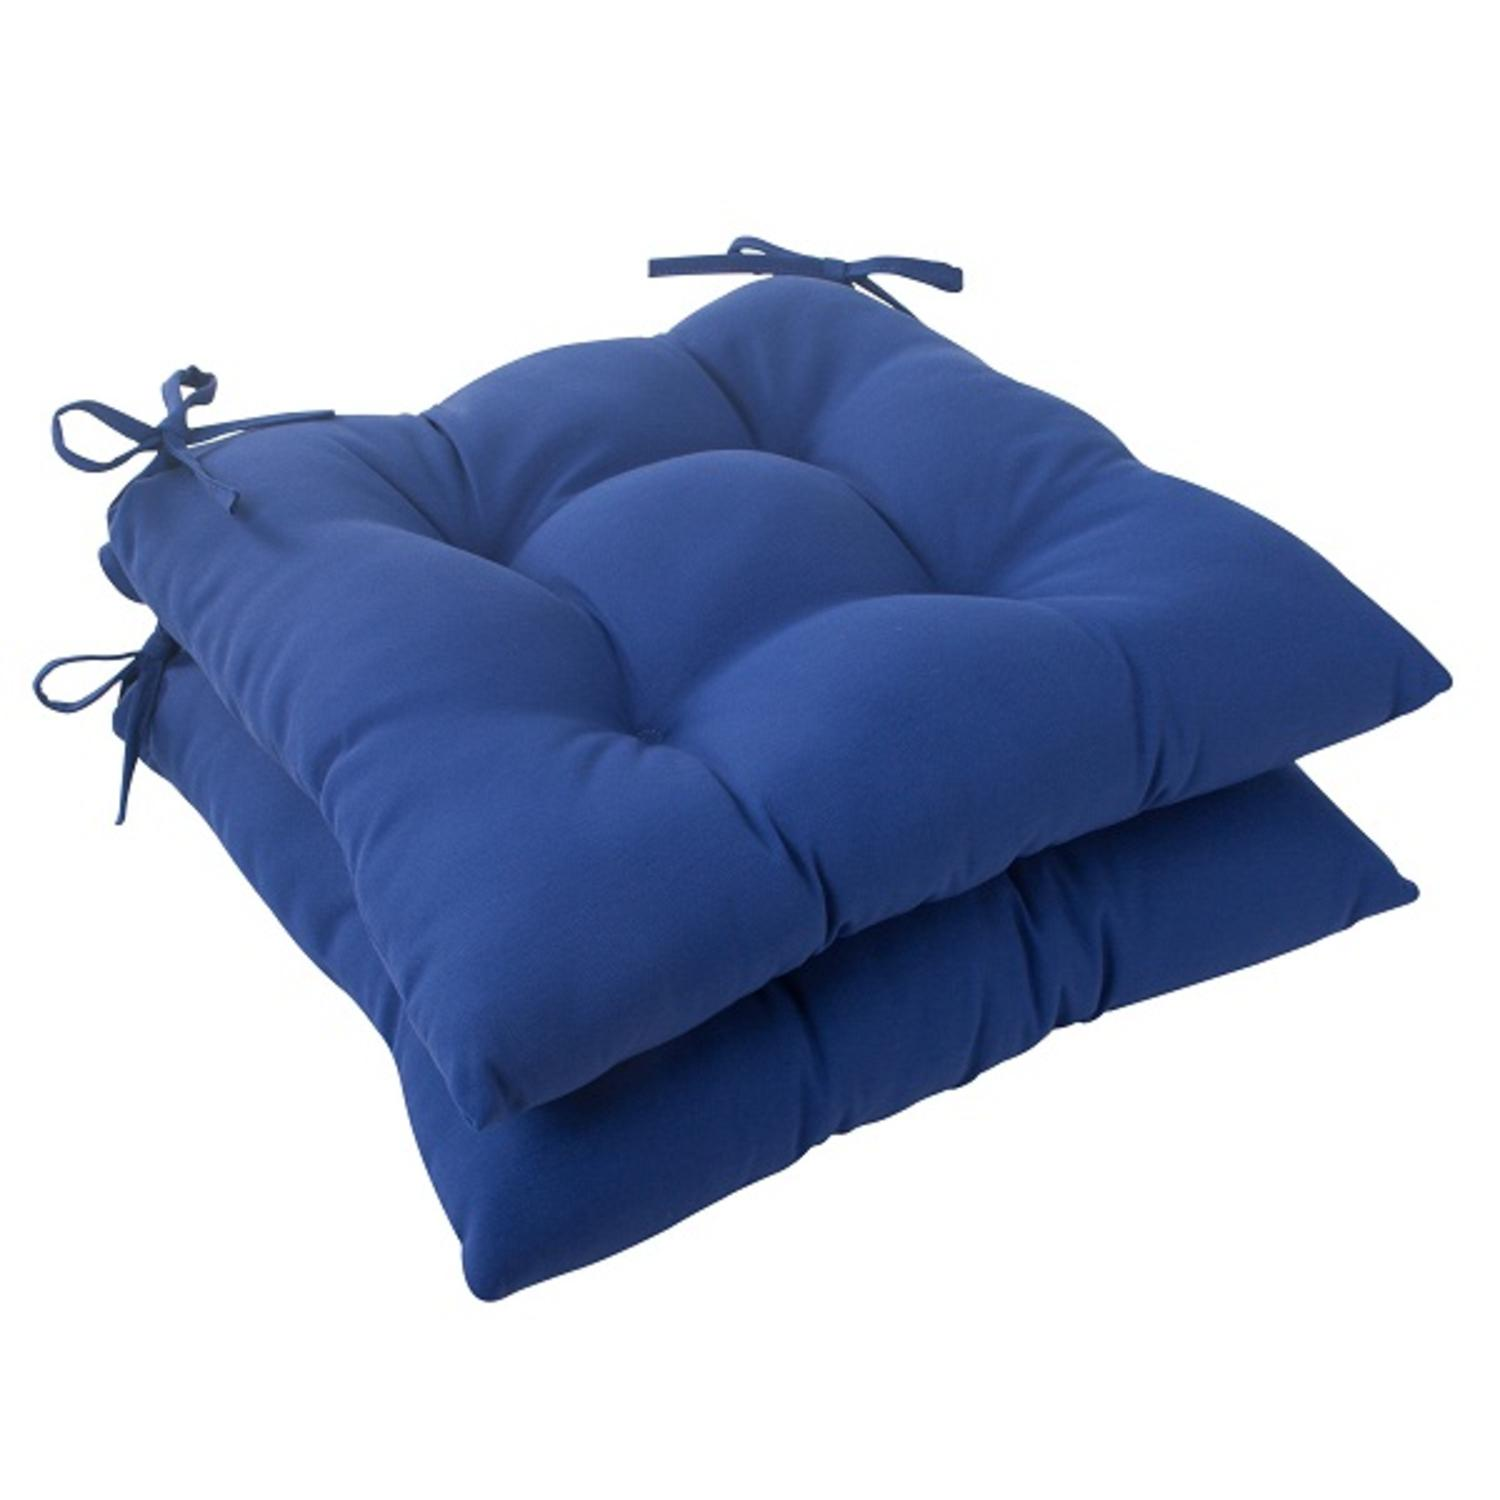 Set of 2 Traditional Navy Blue Outdoor Patio Tufted Seat Cushions with Ties 19